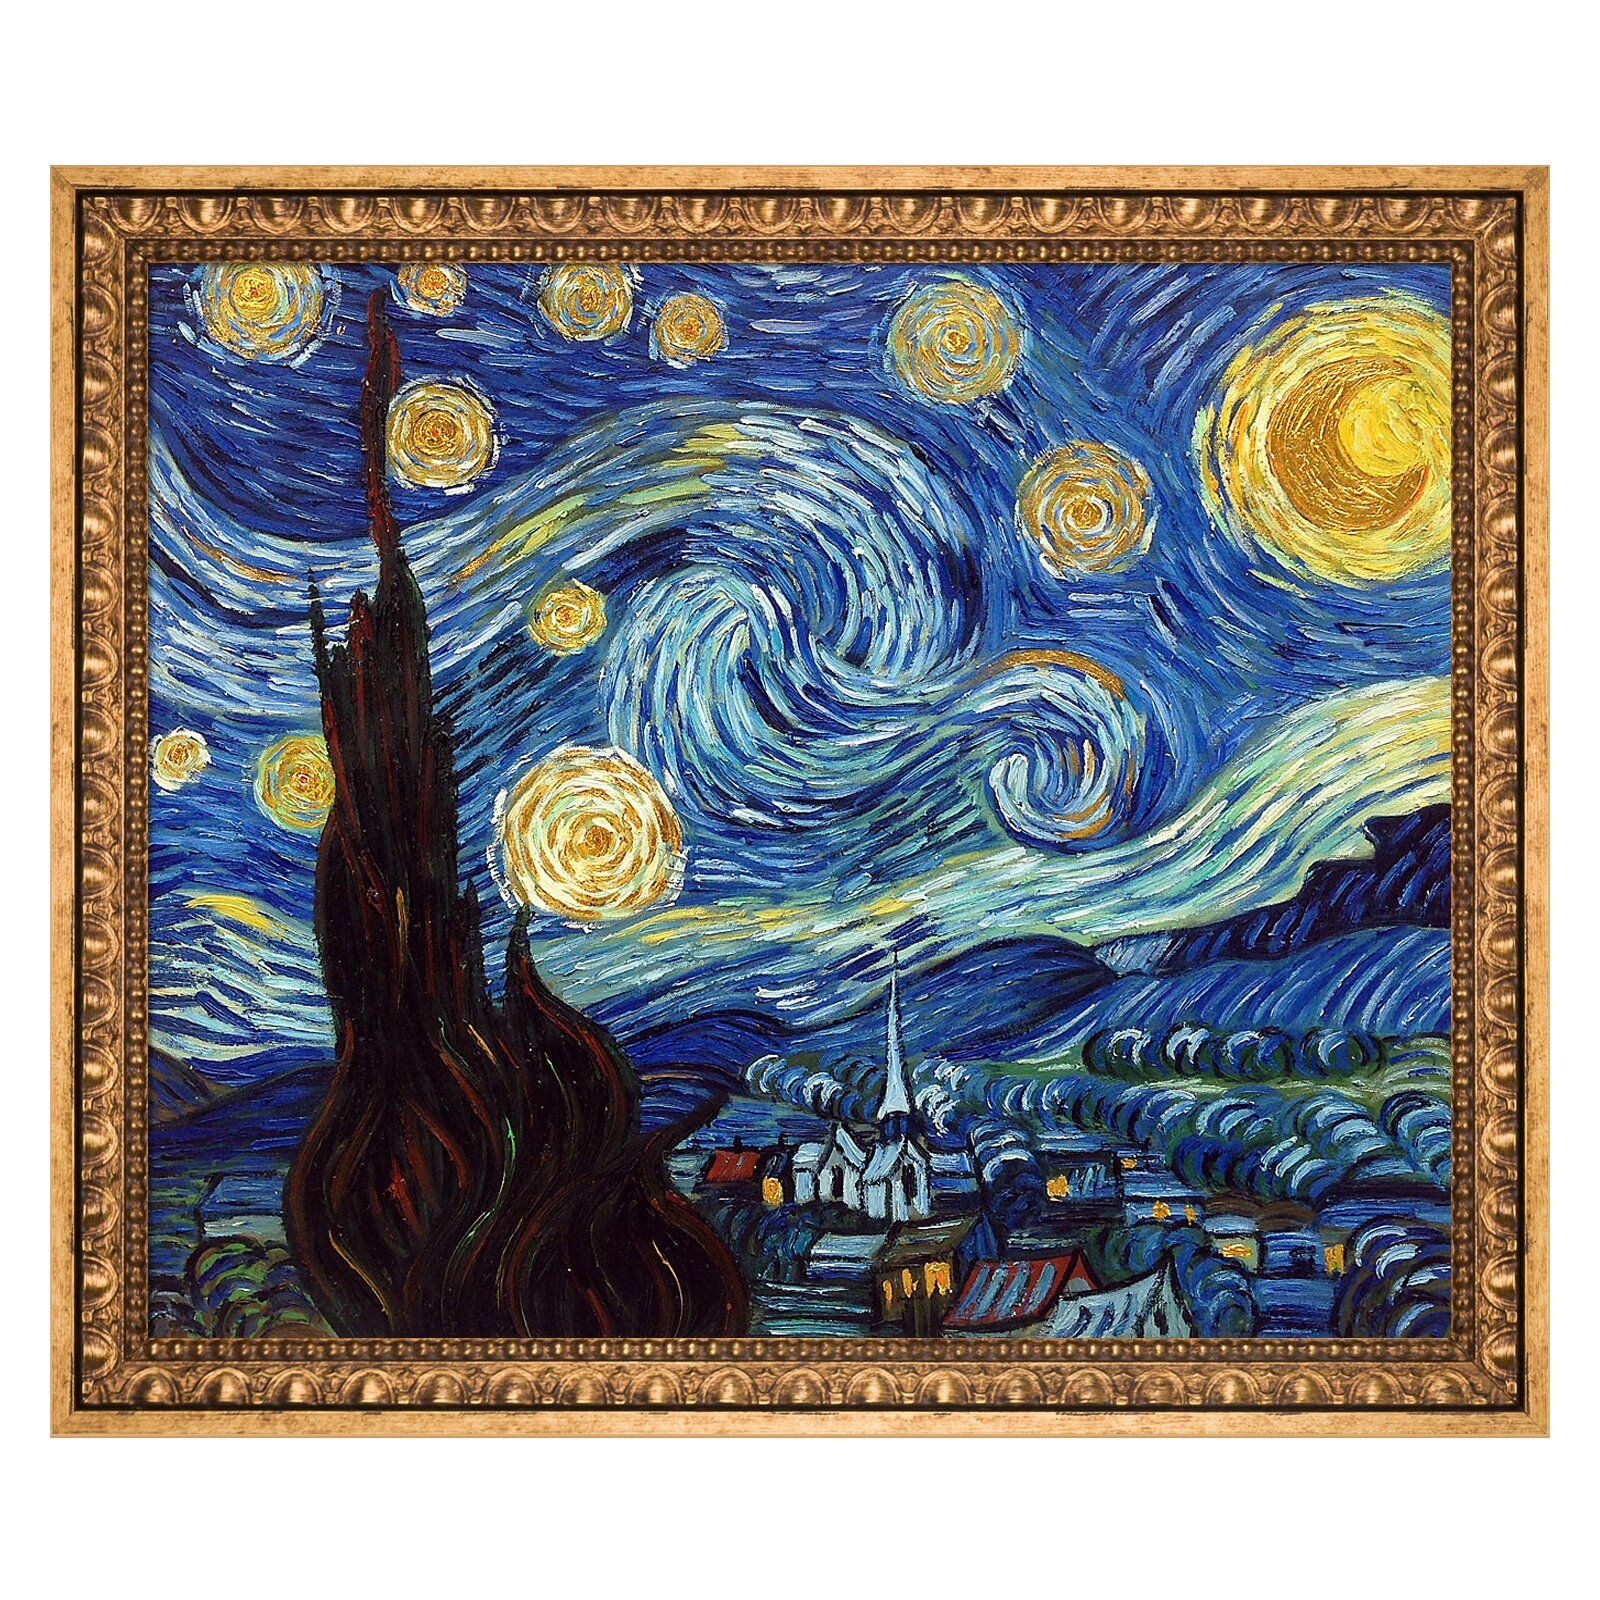 La Pastiche Starry Night By Vincent Van Gogh Framed Hand Painted Oil On Canvas Wayfair Starry Night Painting Starry Night Van Gogh Night Painting